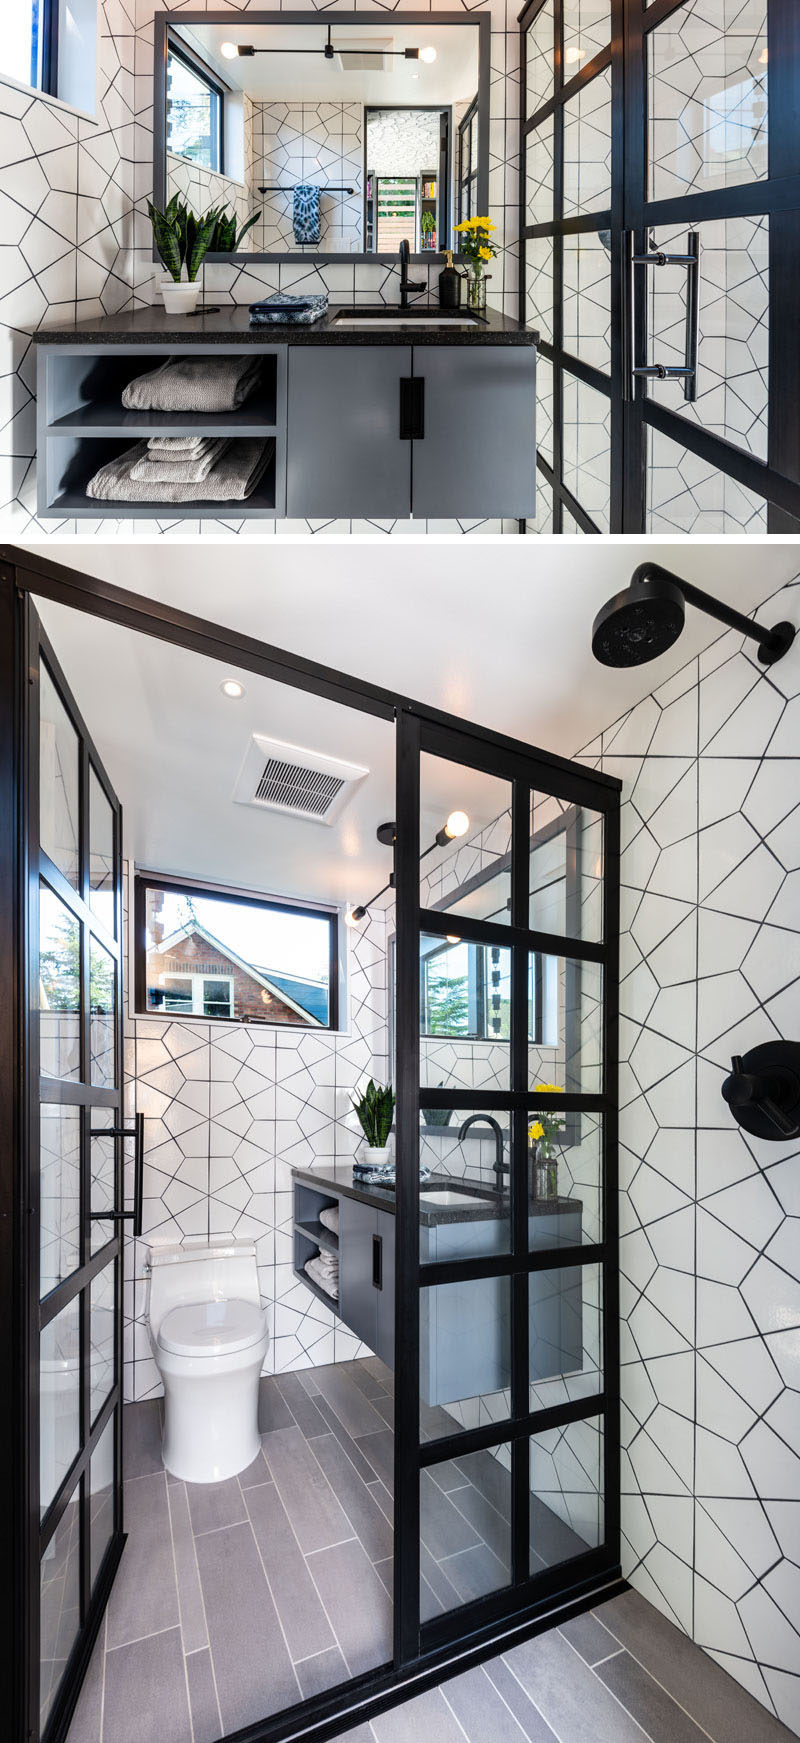 In this small and modern bathroom, white geometric tiles with black grout cover the walls, while a black framed glass screen partitions the shower off from the rest of the bathroom. #Bathroom #BlackAndWhite #ModernBathroom